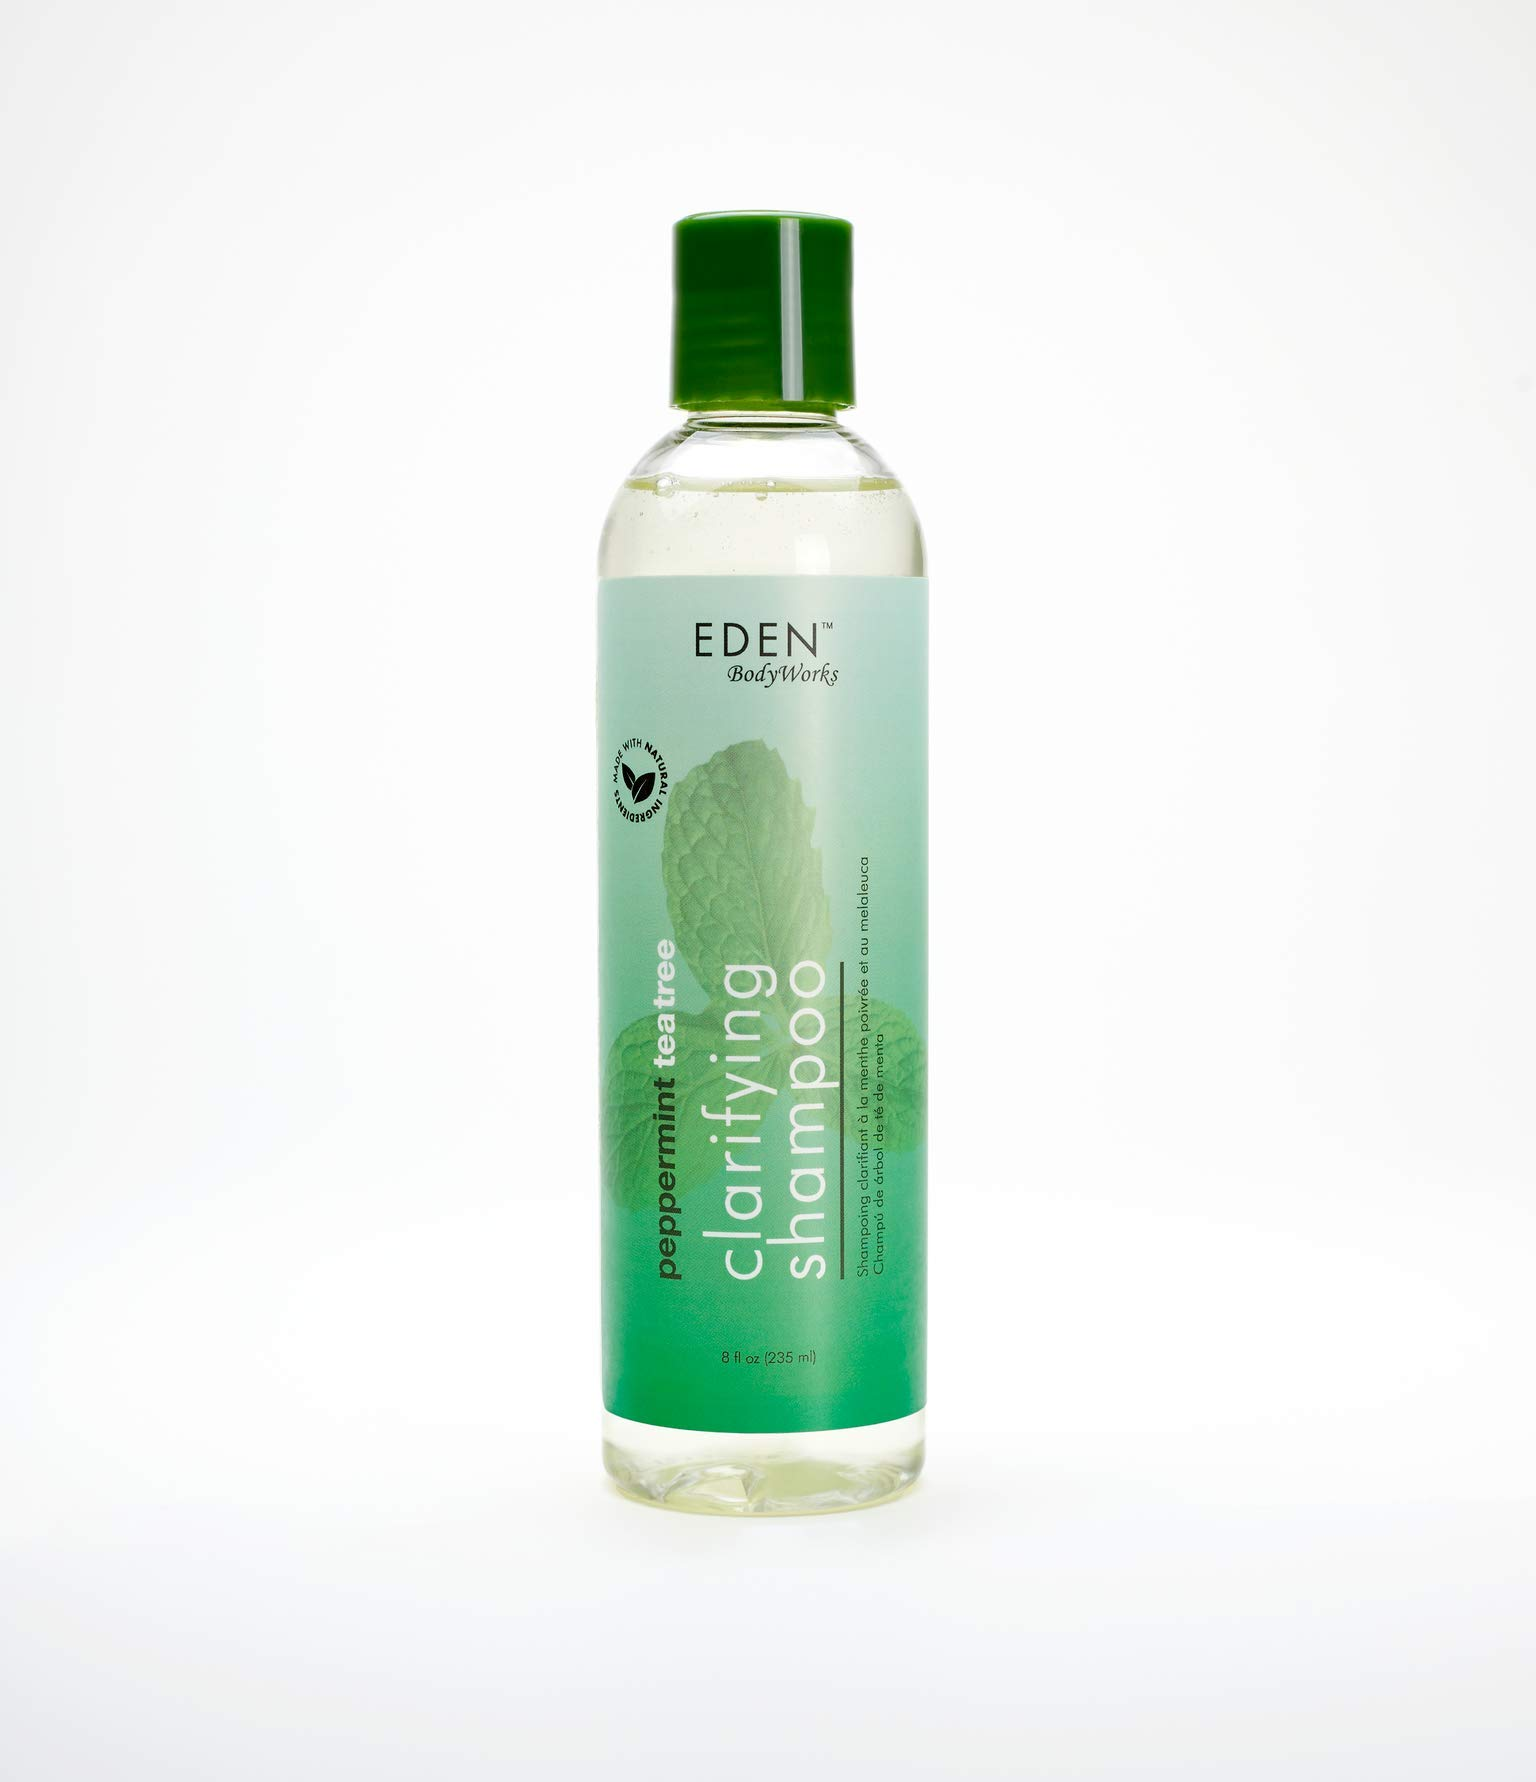 EDEN BodyWorks Peppermint Tea Tree Clear Clarifying Shampoo   8 oz   Refresh Scalp, Remove Build Up, Prevent Dandruff - Packaging May Vary